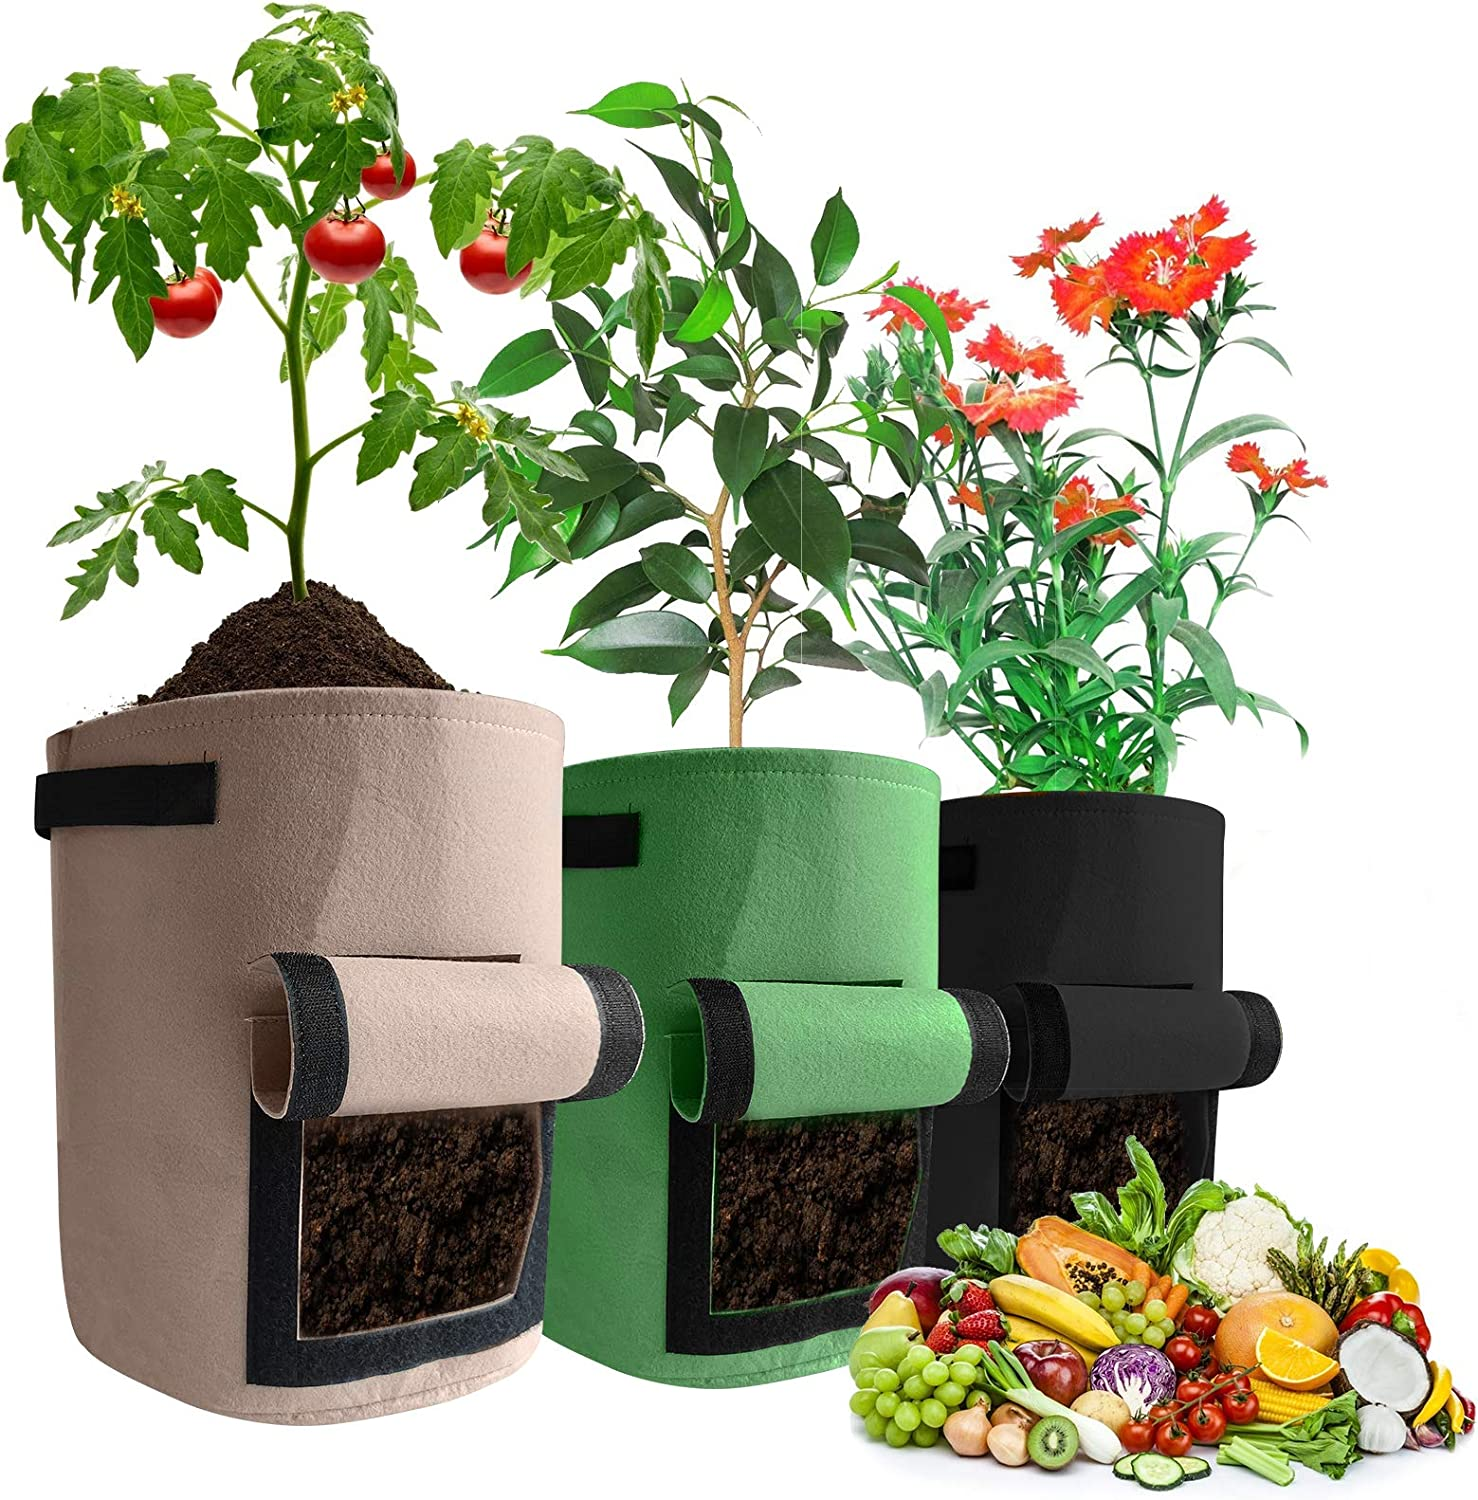 Grow Bags 3 Pack 7 Gallon 3 Color NonWoven Aeration Fabric Pots with Handles and Access Flap, Garden Vegetable Planting Outdoor Breathable Bags for Potato Tomato and Fruits (7 Gallon)